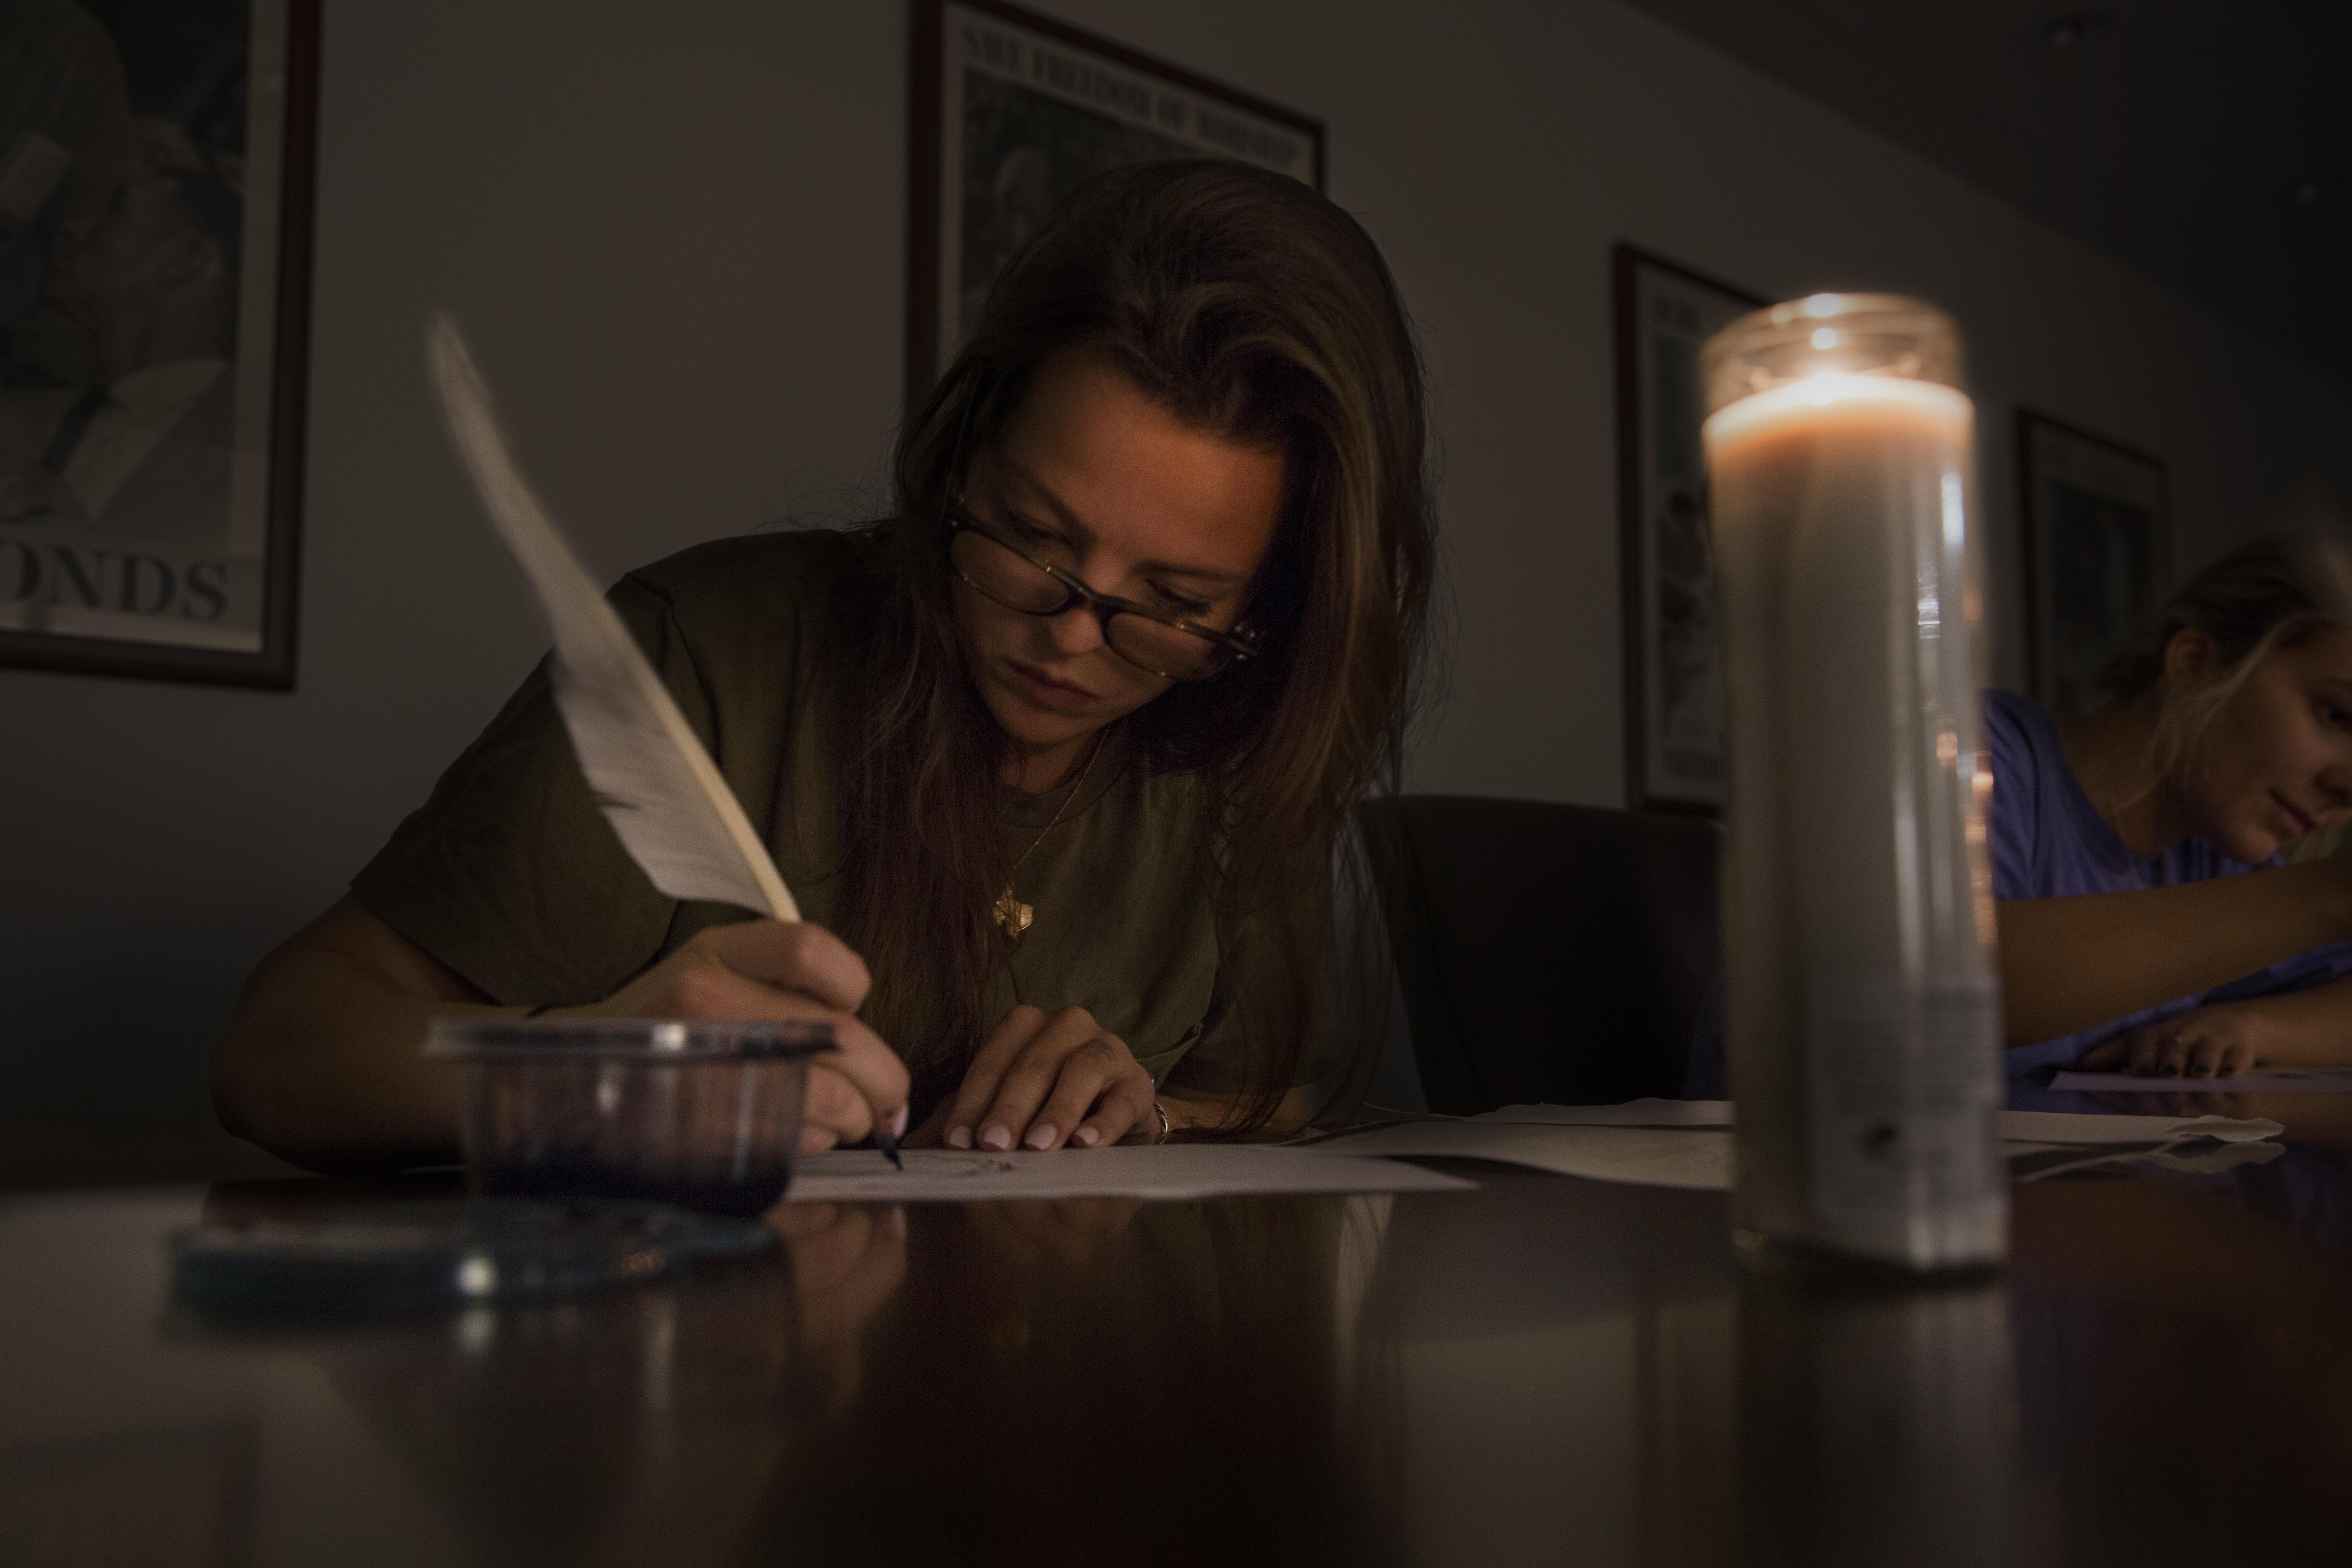 A student writes with a quill